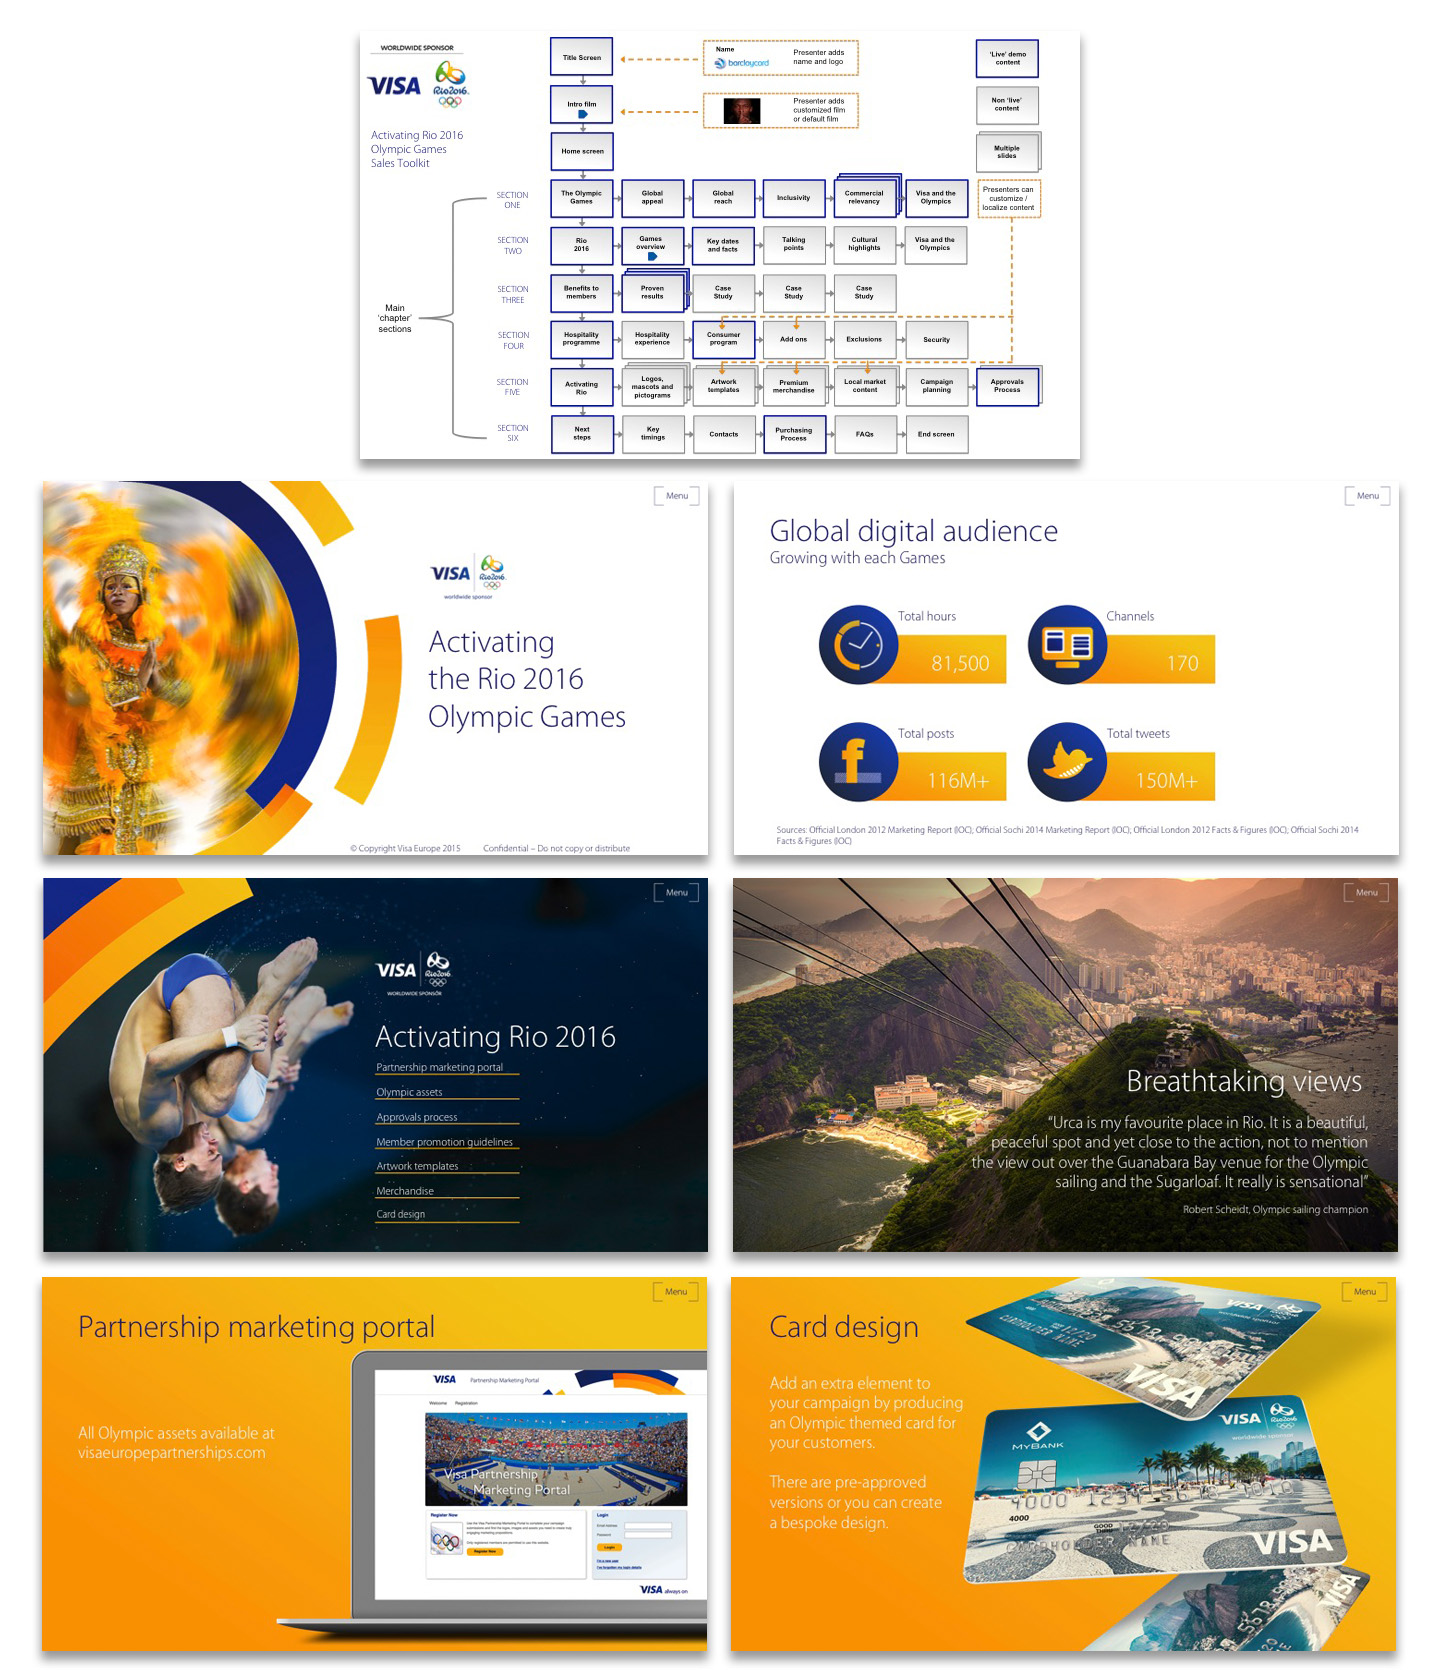 02 - VISA Europe Rio 2016 Toolkit